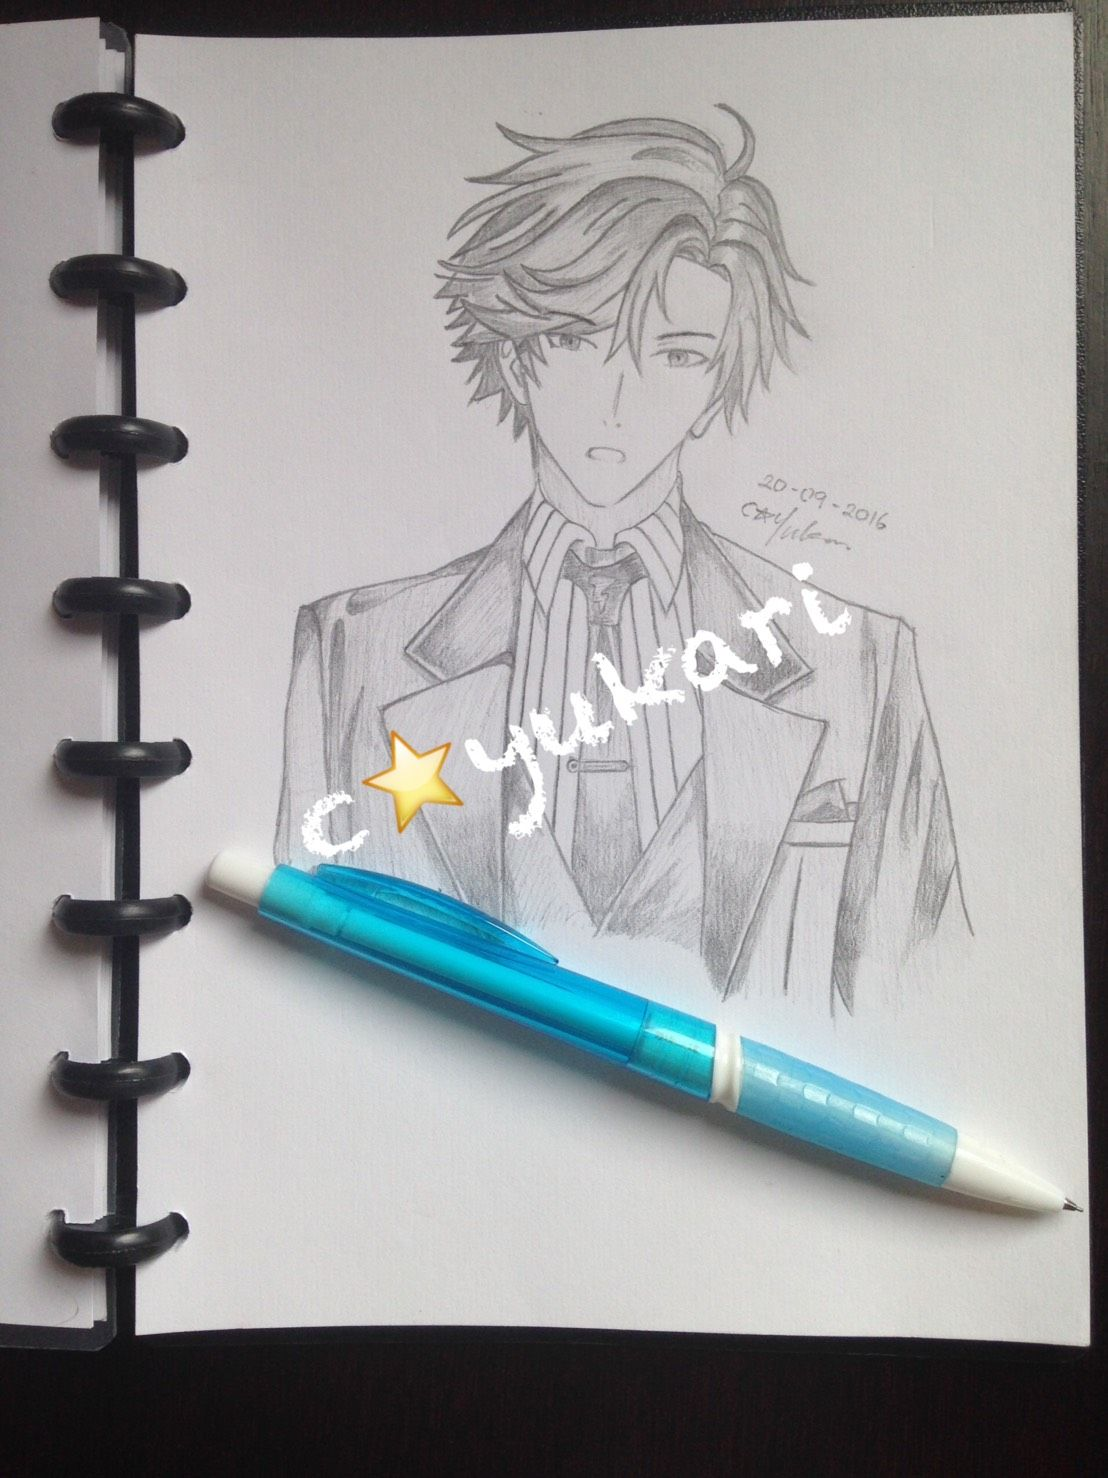 JUMIN HAN aka MR. CHAIRMAN